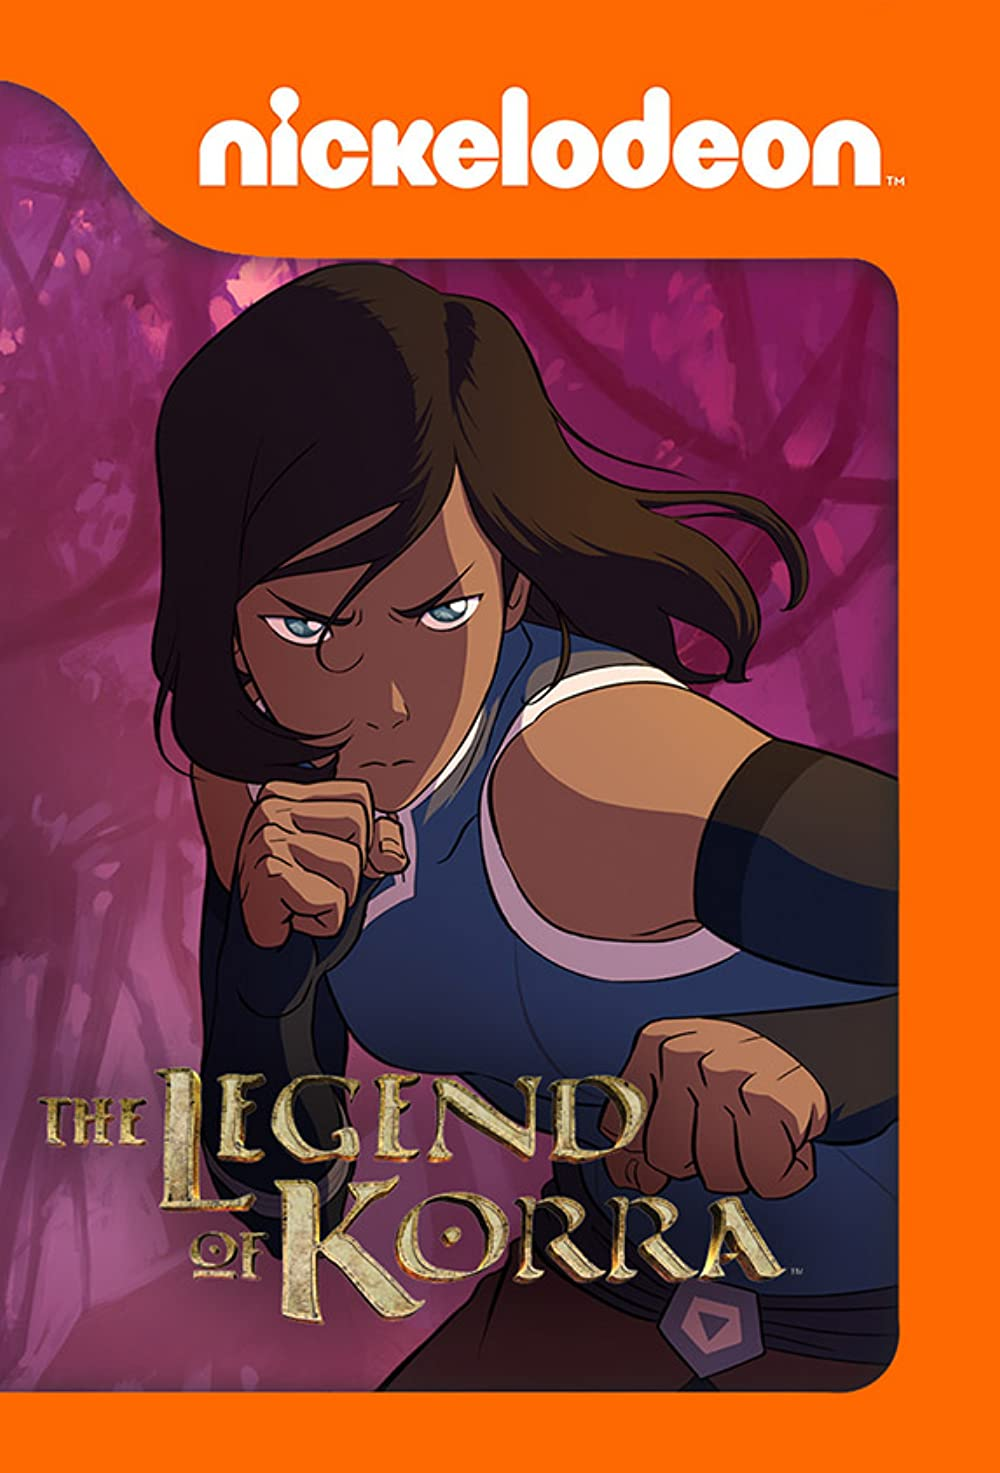 Which legend of korra character would you date